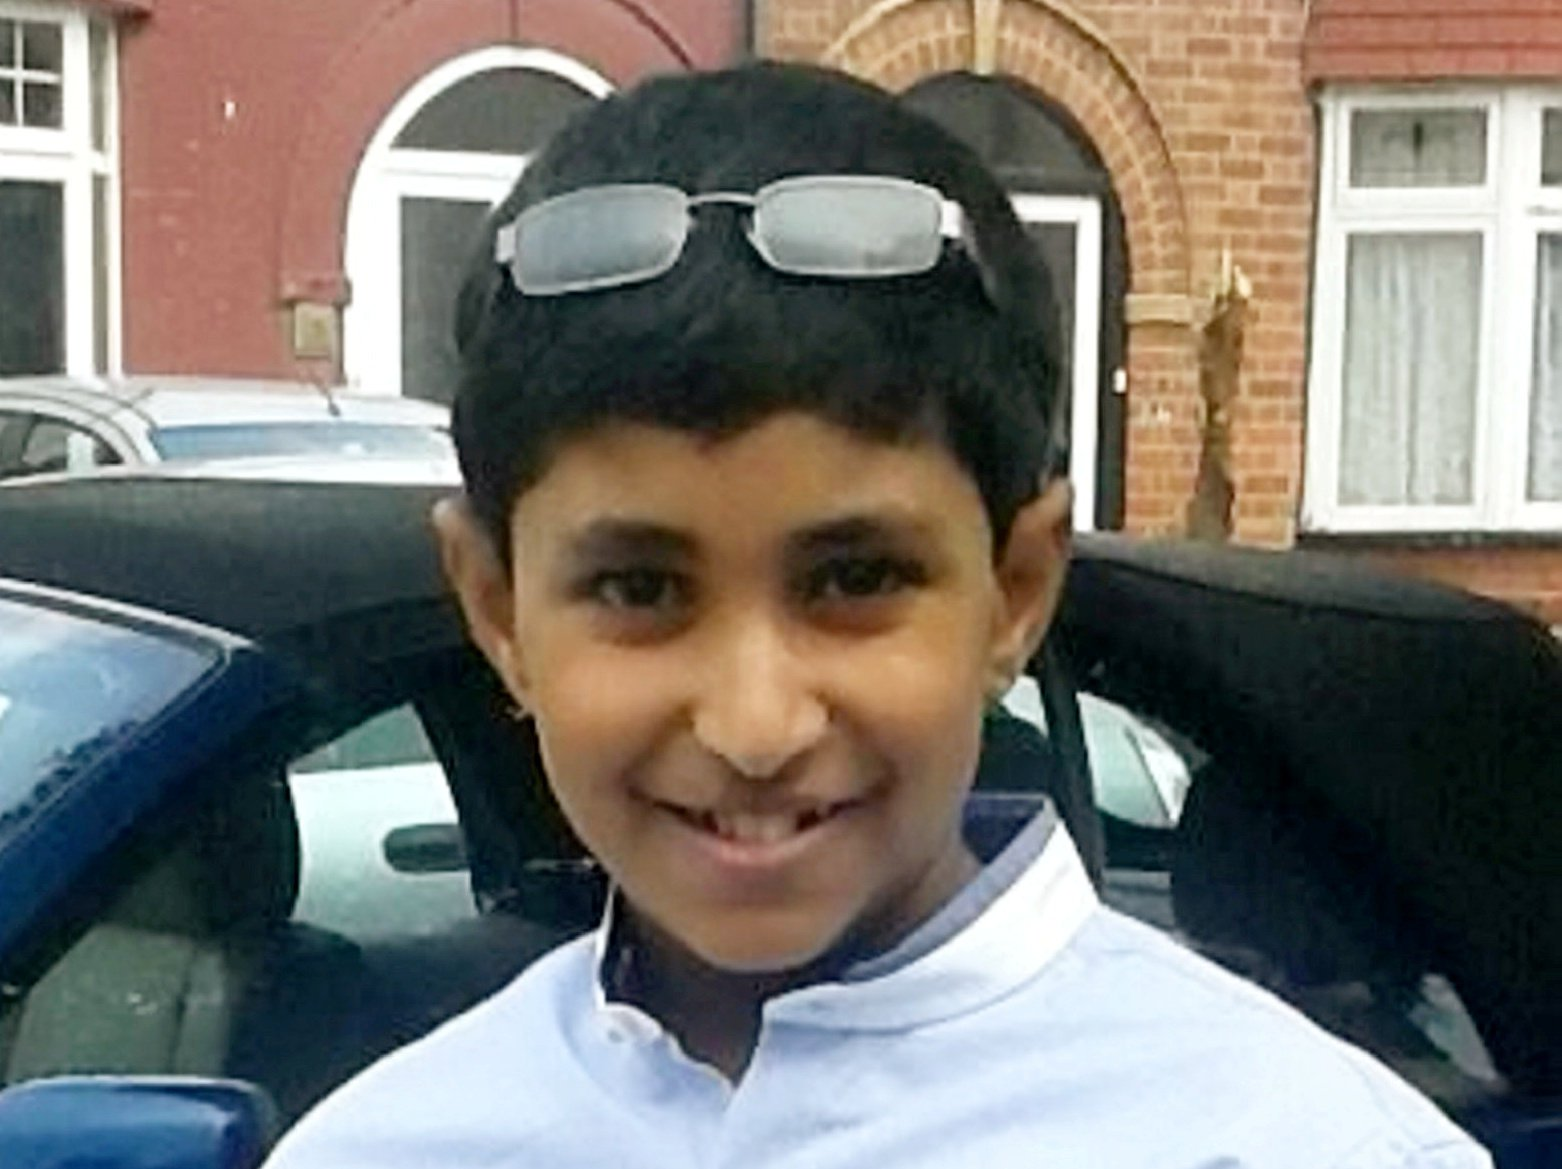 Boy killed after pupil 'flicked' cheese on his neck screamed 'I'm going to die'